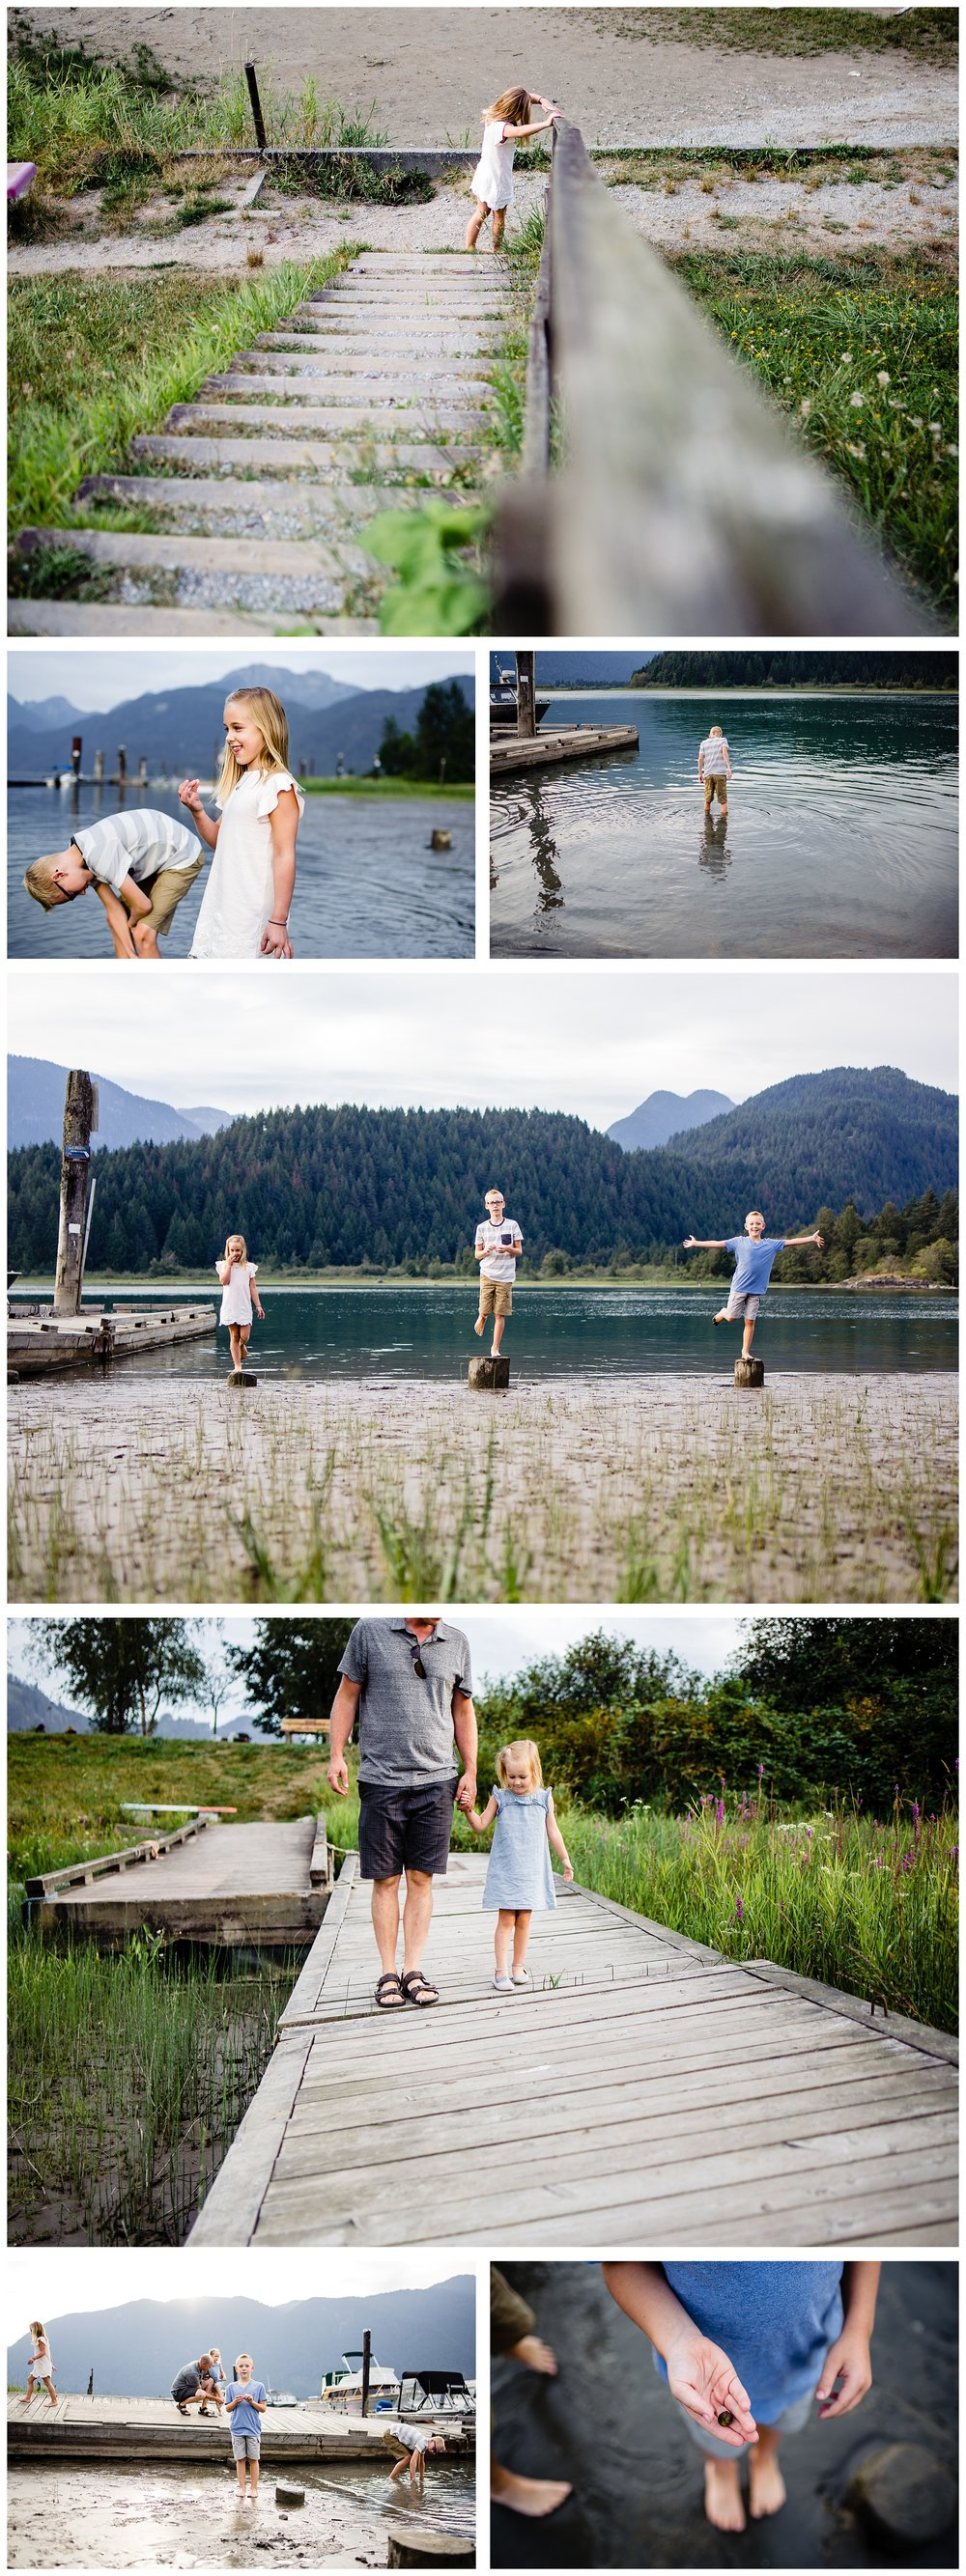 Pitt Lake Documentary Family Photographer Bubbles Mud Family of 6 Boys Girls Children_0091.jpg